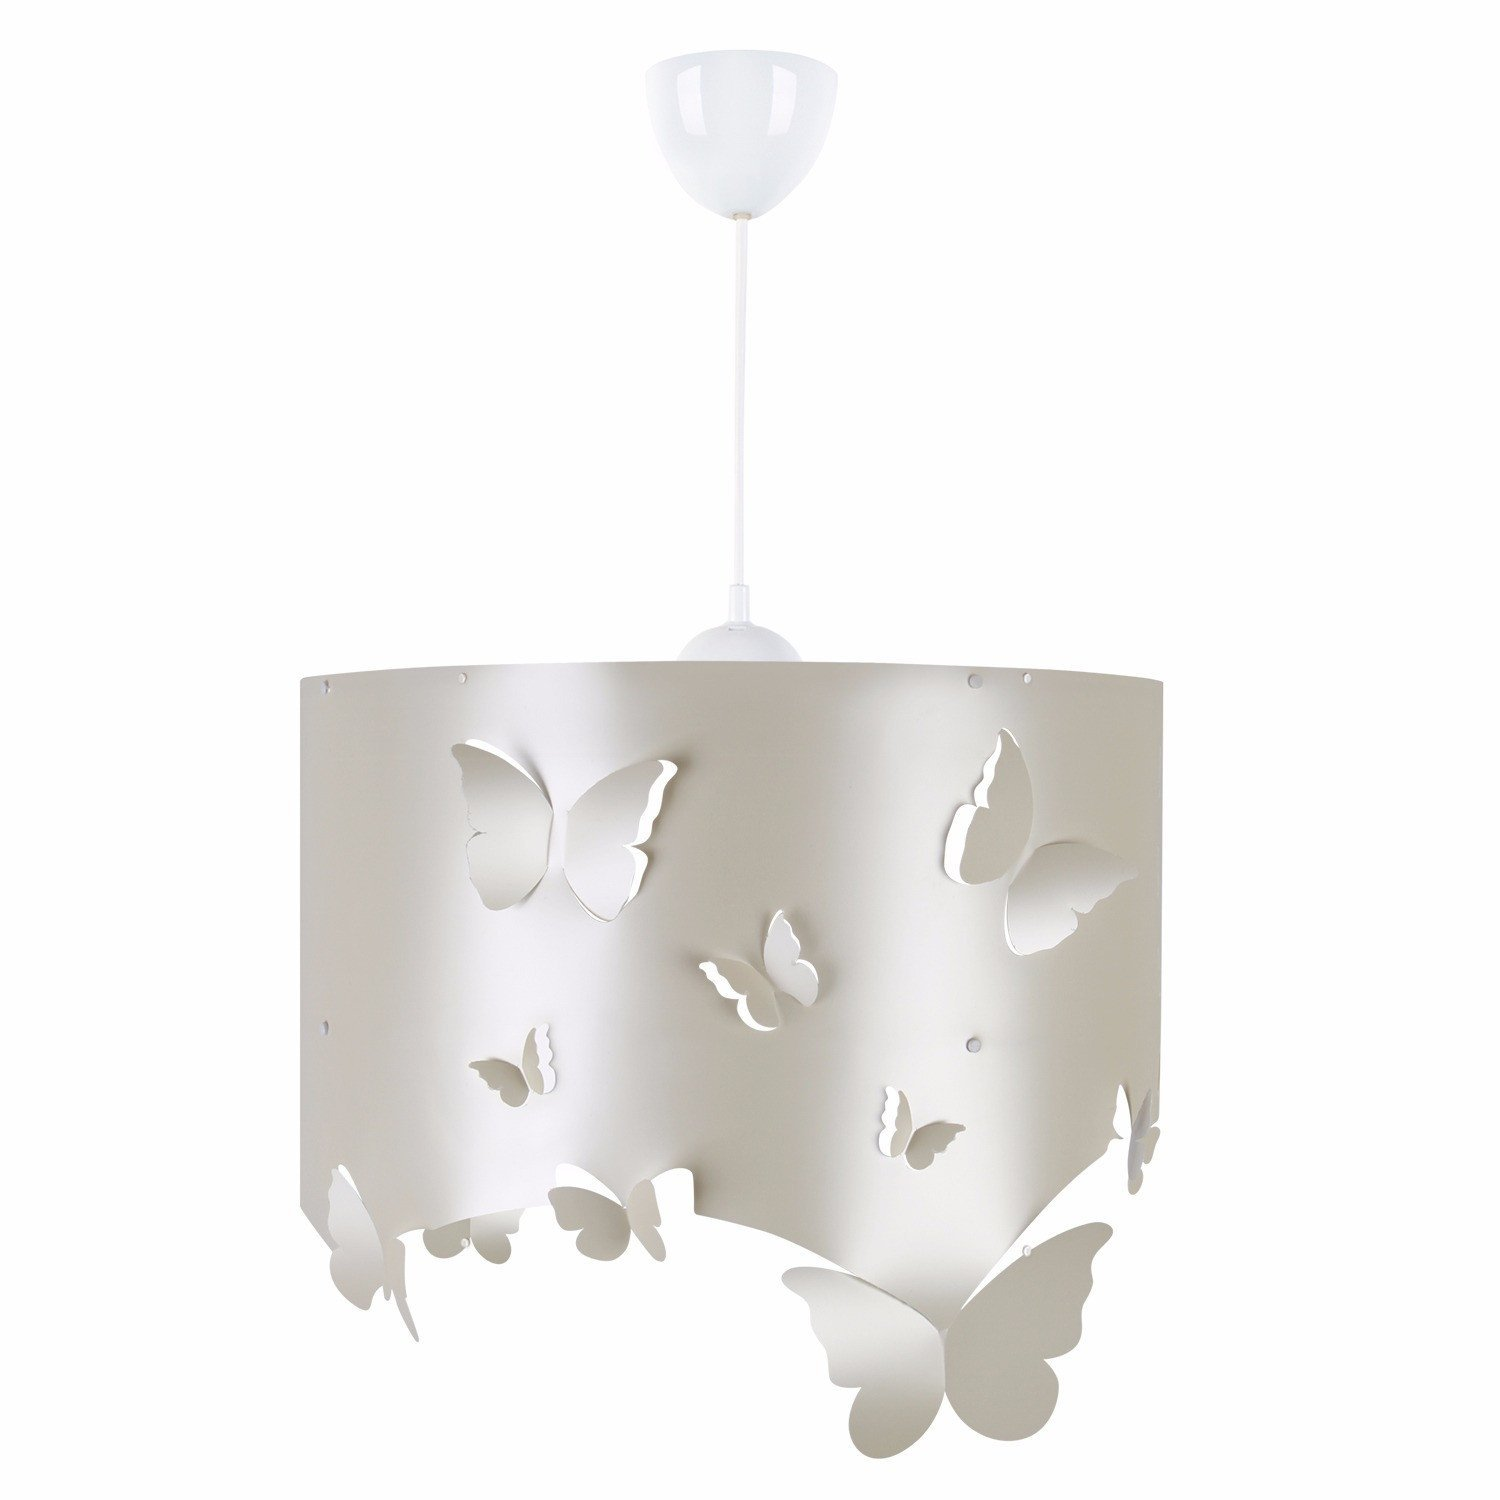 LaModaHome Lifes from Nature Chandelier, Butterflies on The Surface, Modern, Decorative - Hang Ceiling Lighting Fixture for Home & Office, Living Room, Study Room